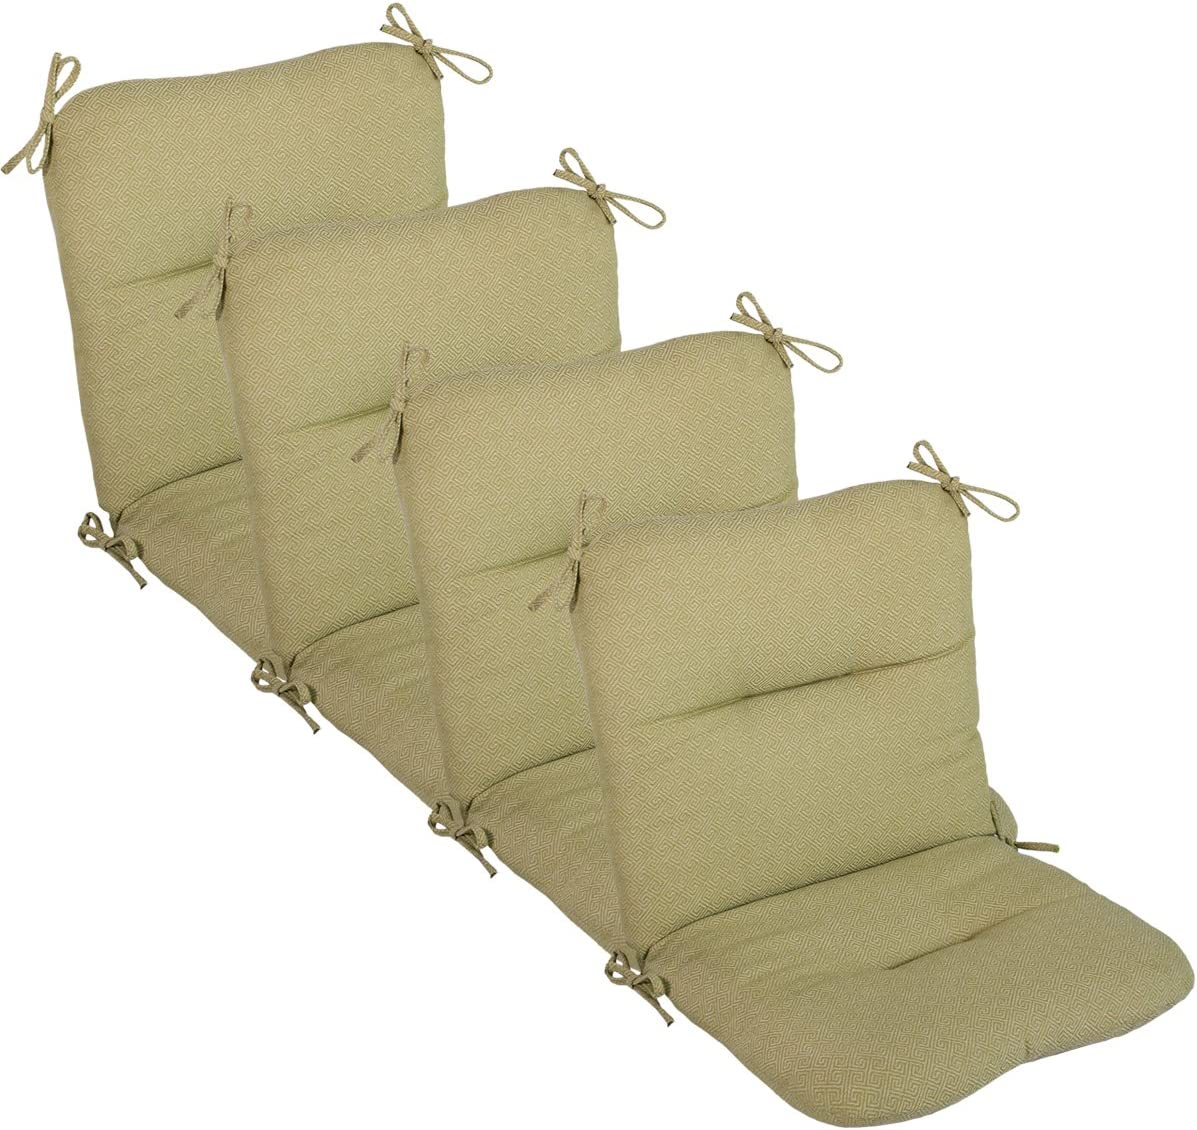 comfort classics inc set of 4 outdoor chair cushions 20 x 36 x 3 h 19 in outdura fabric wasabi made in usa